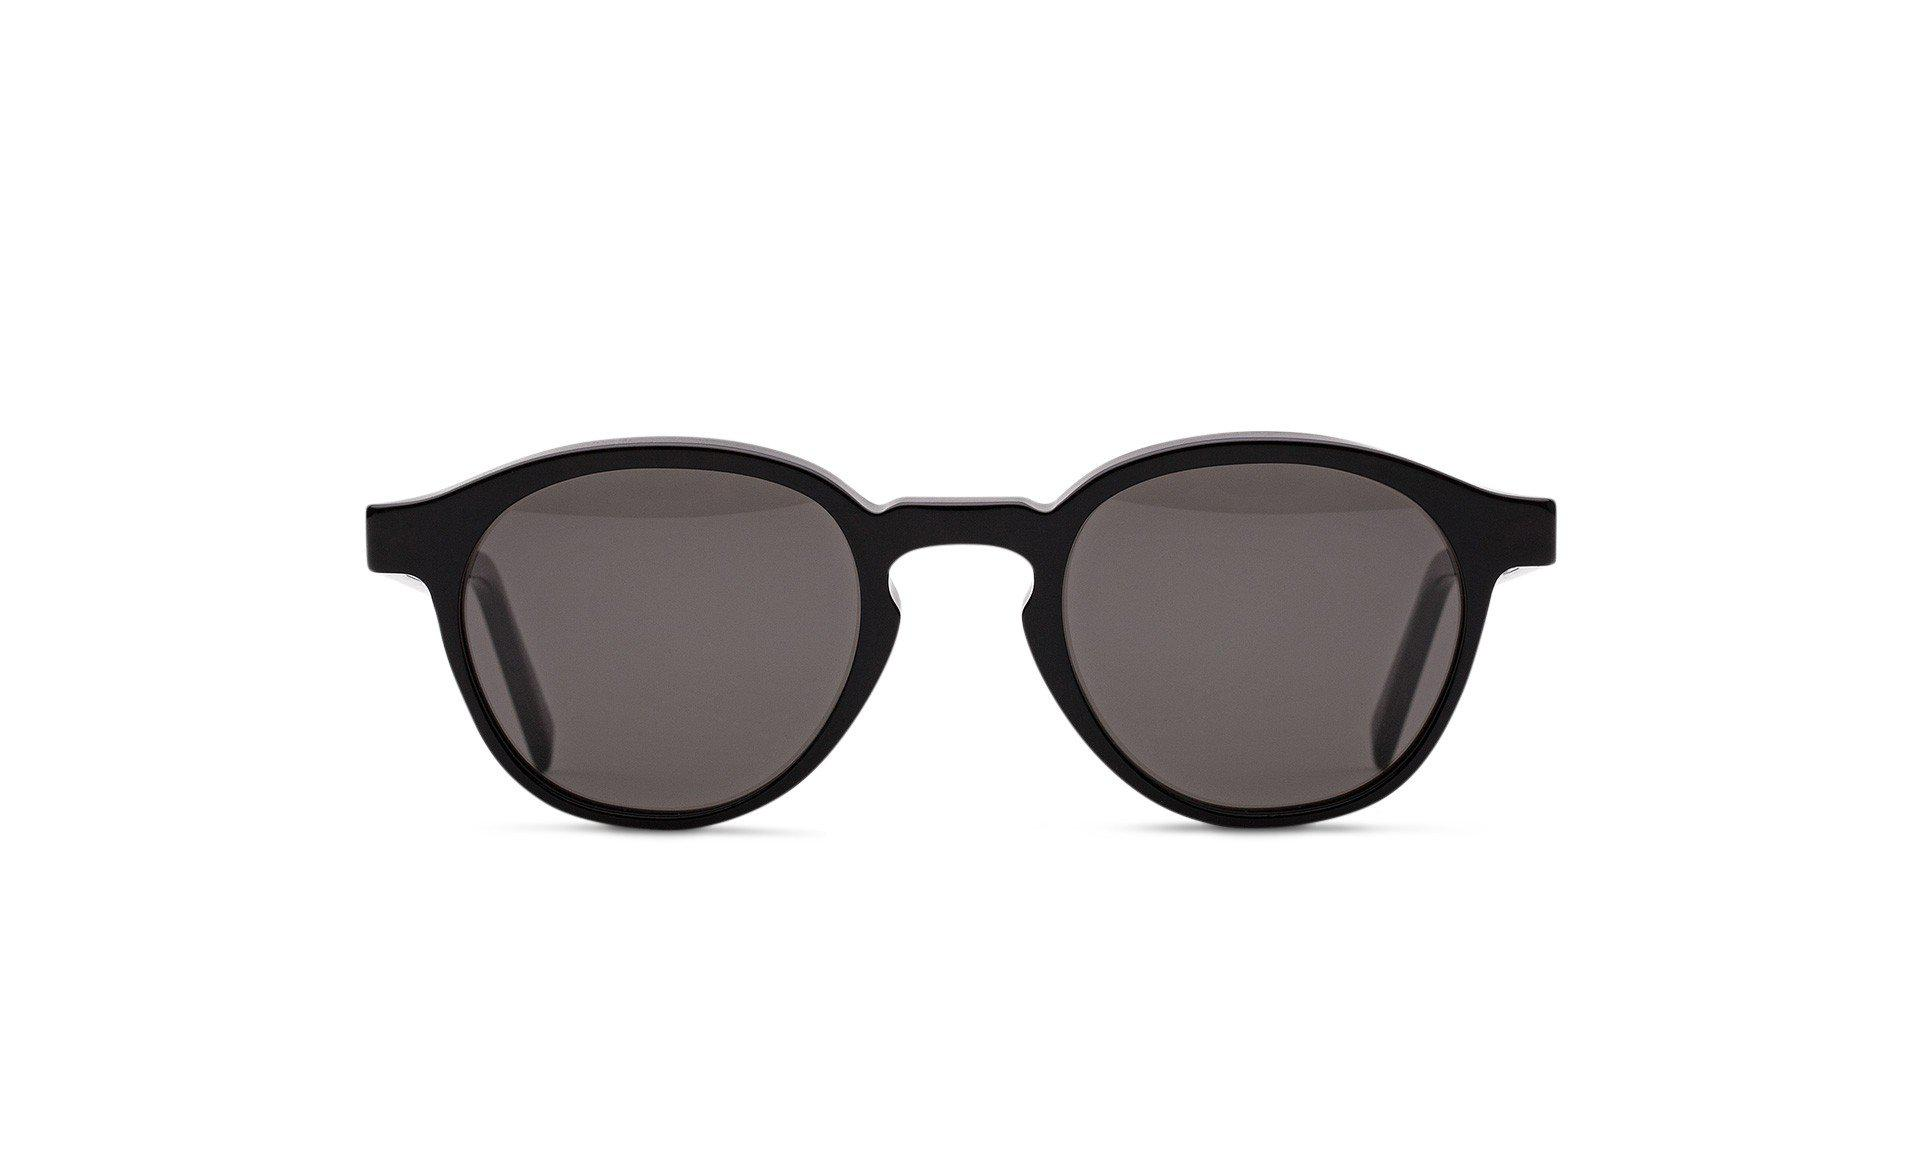 36a2b439fd5de6 Lyst - Retrosuperfuture Andy Warhol   The Iconic Series Black in ...